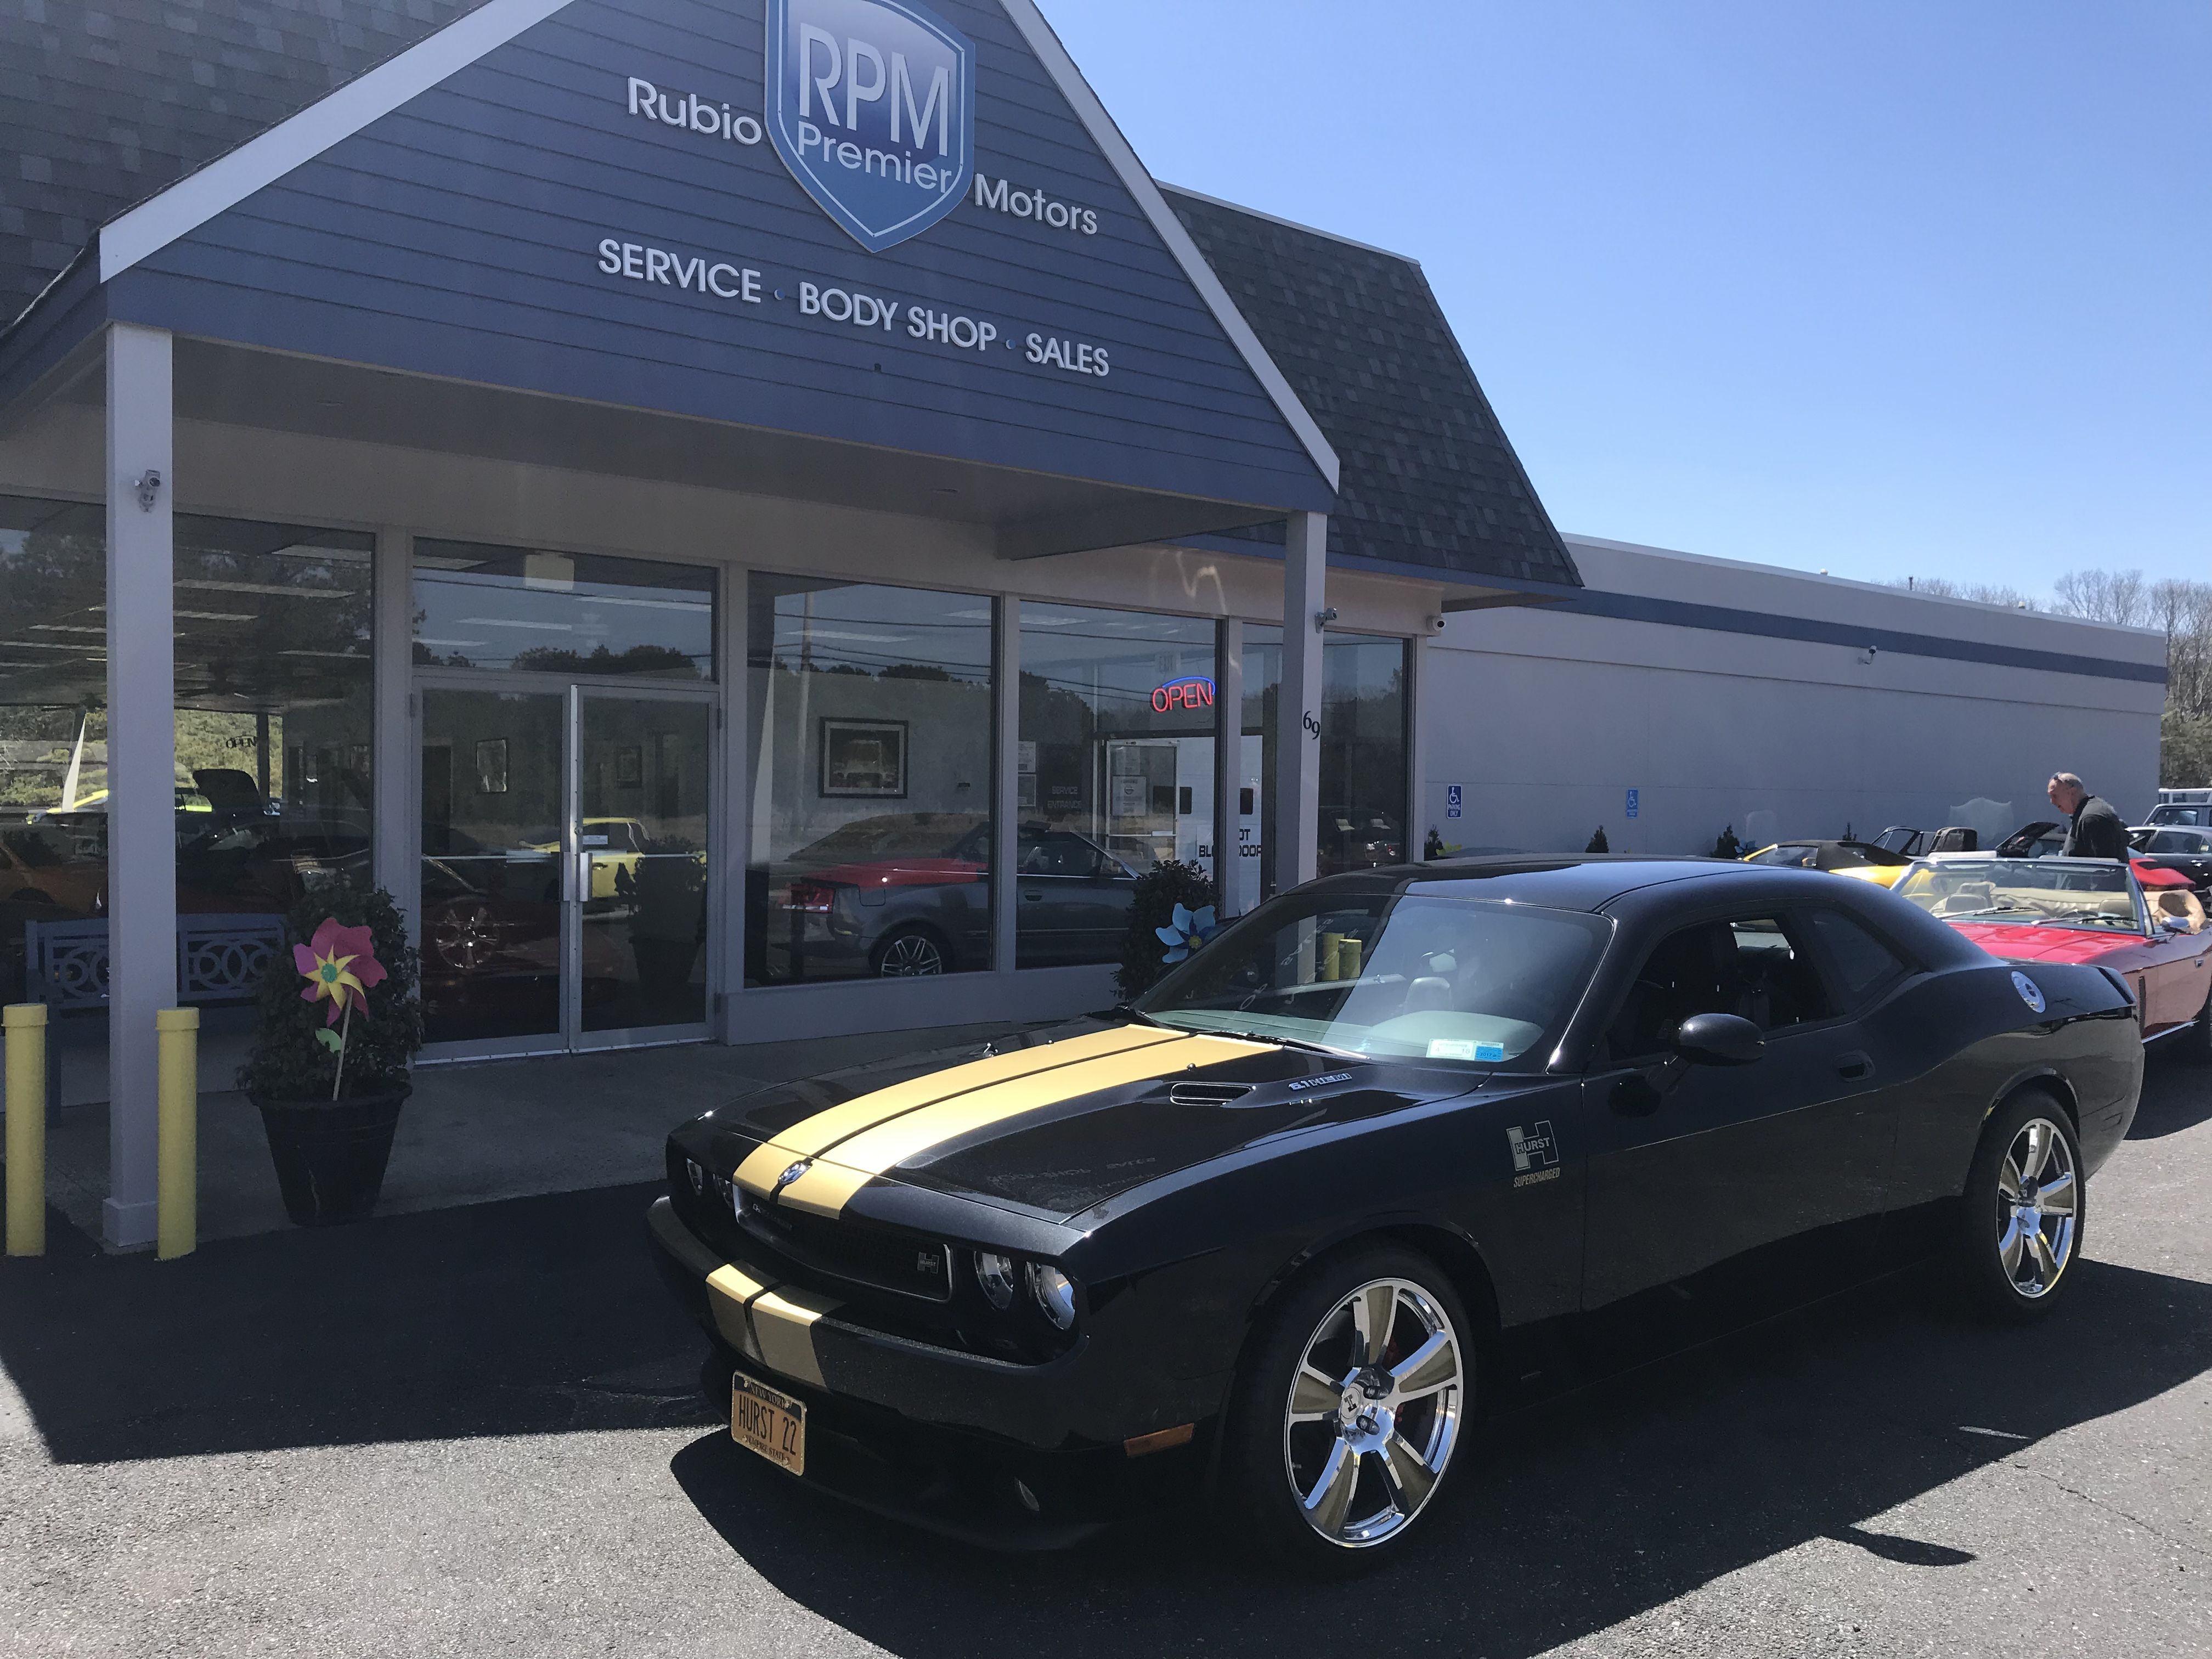 Pin By Rubio Premier Sales On 2010 Dodge Challenger Srt8 Hurst Edition 22 For Sale 2010 Dodge Challenger Srt8 2010 Dodge Challenger Challenger Srt8